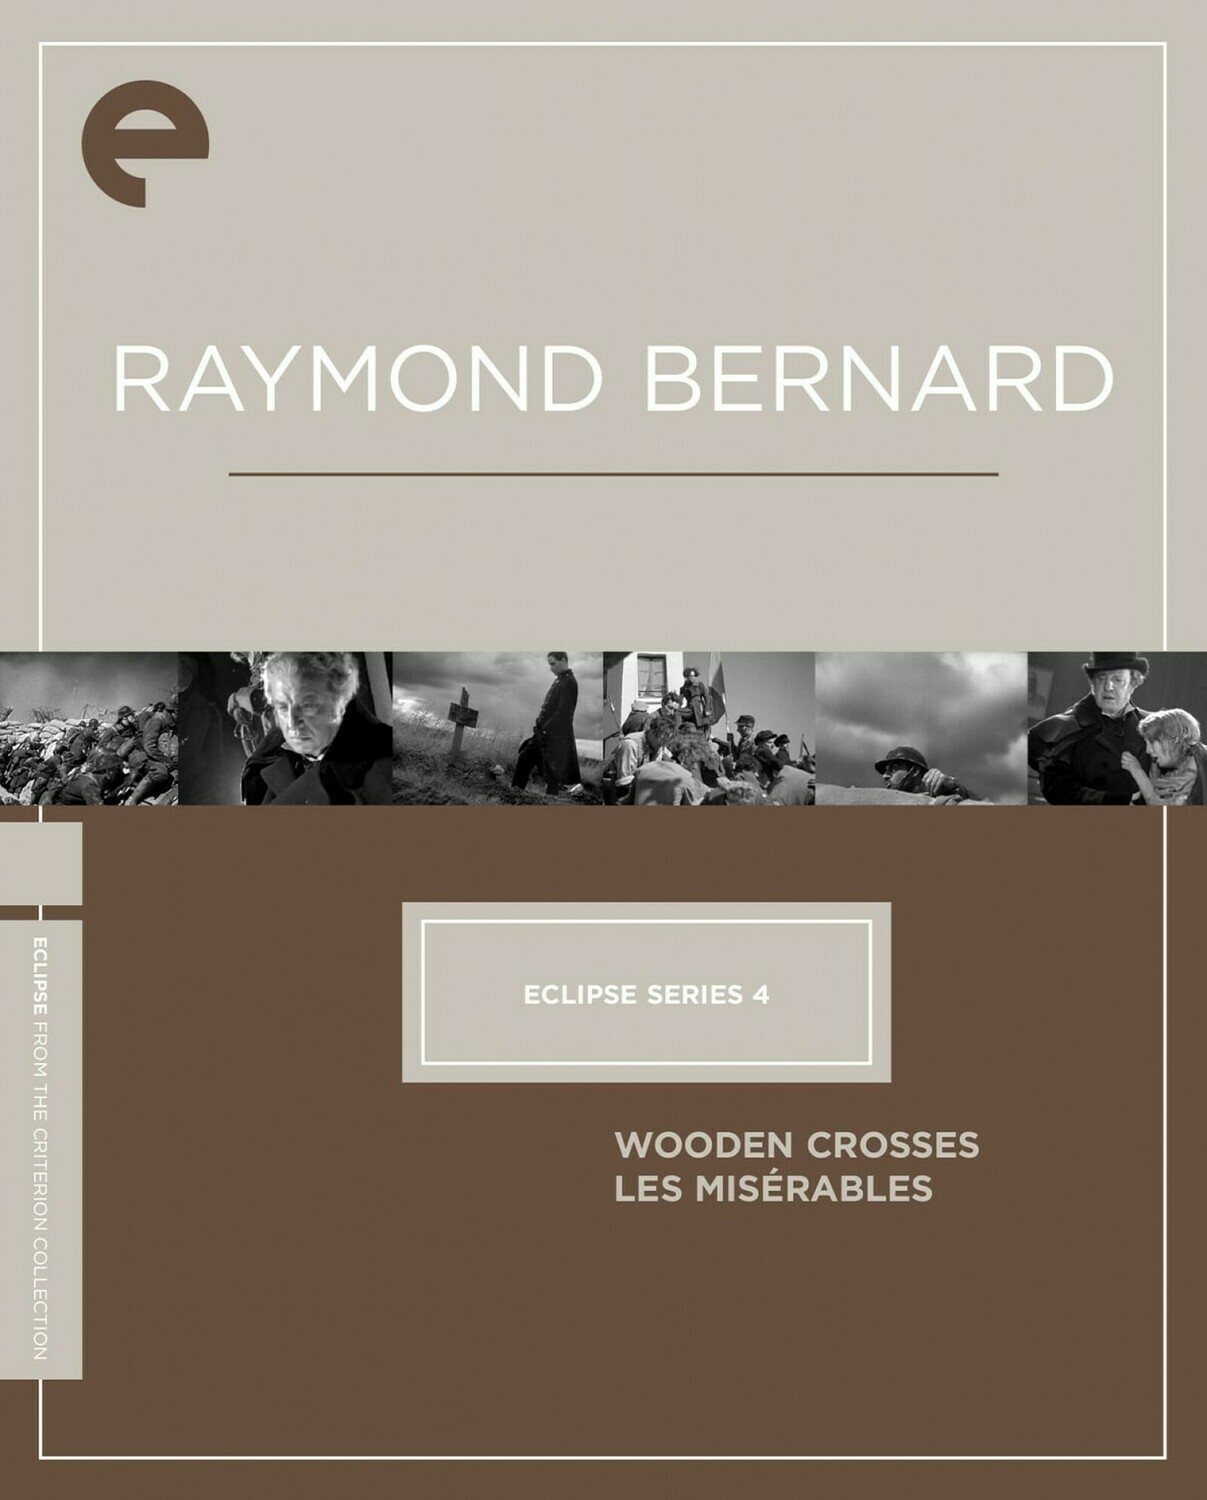 RAYMOND BERNARD - BOX SET - DVD